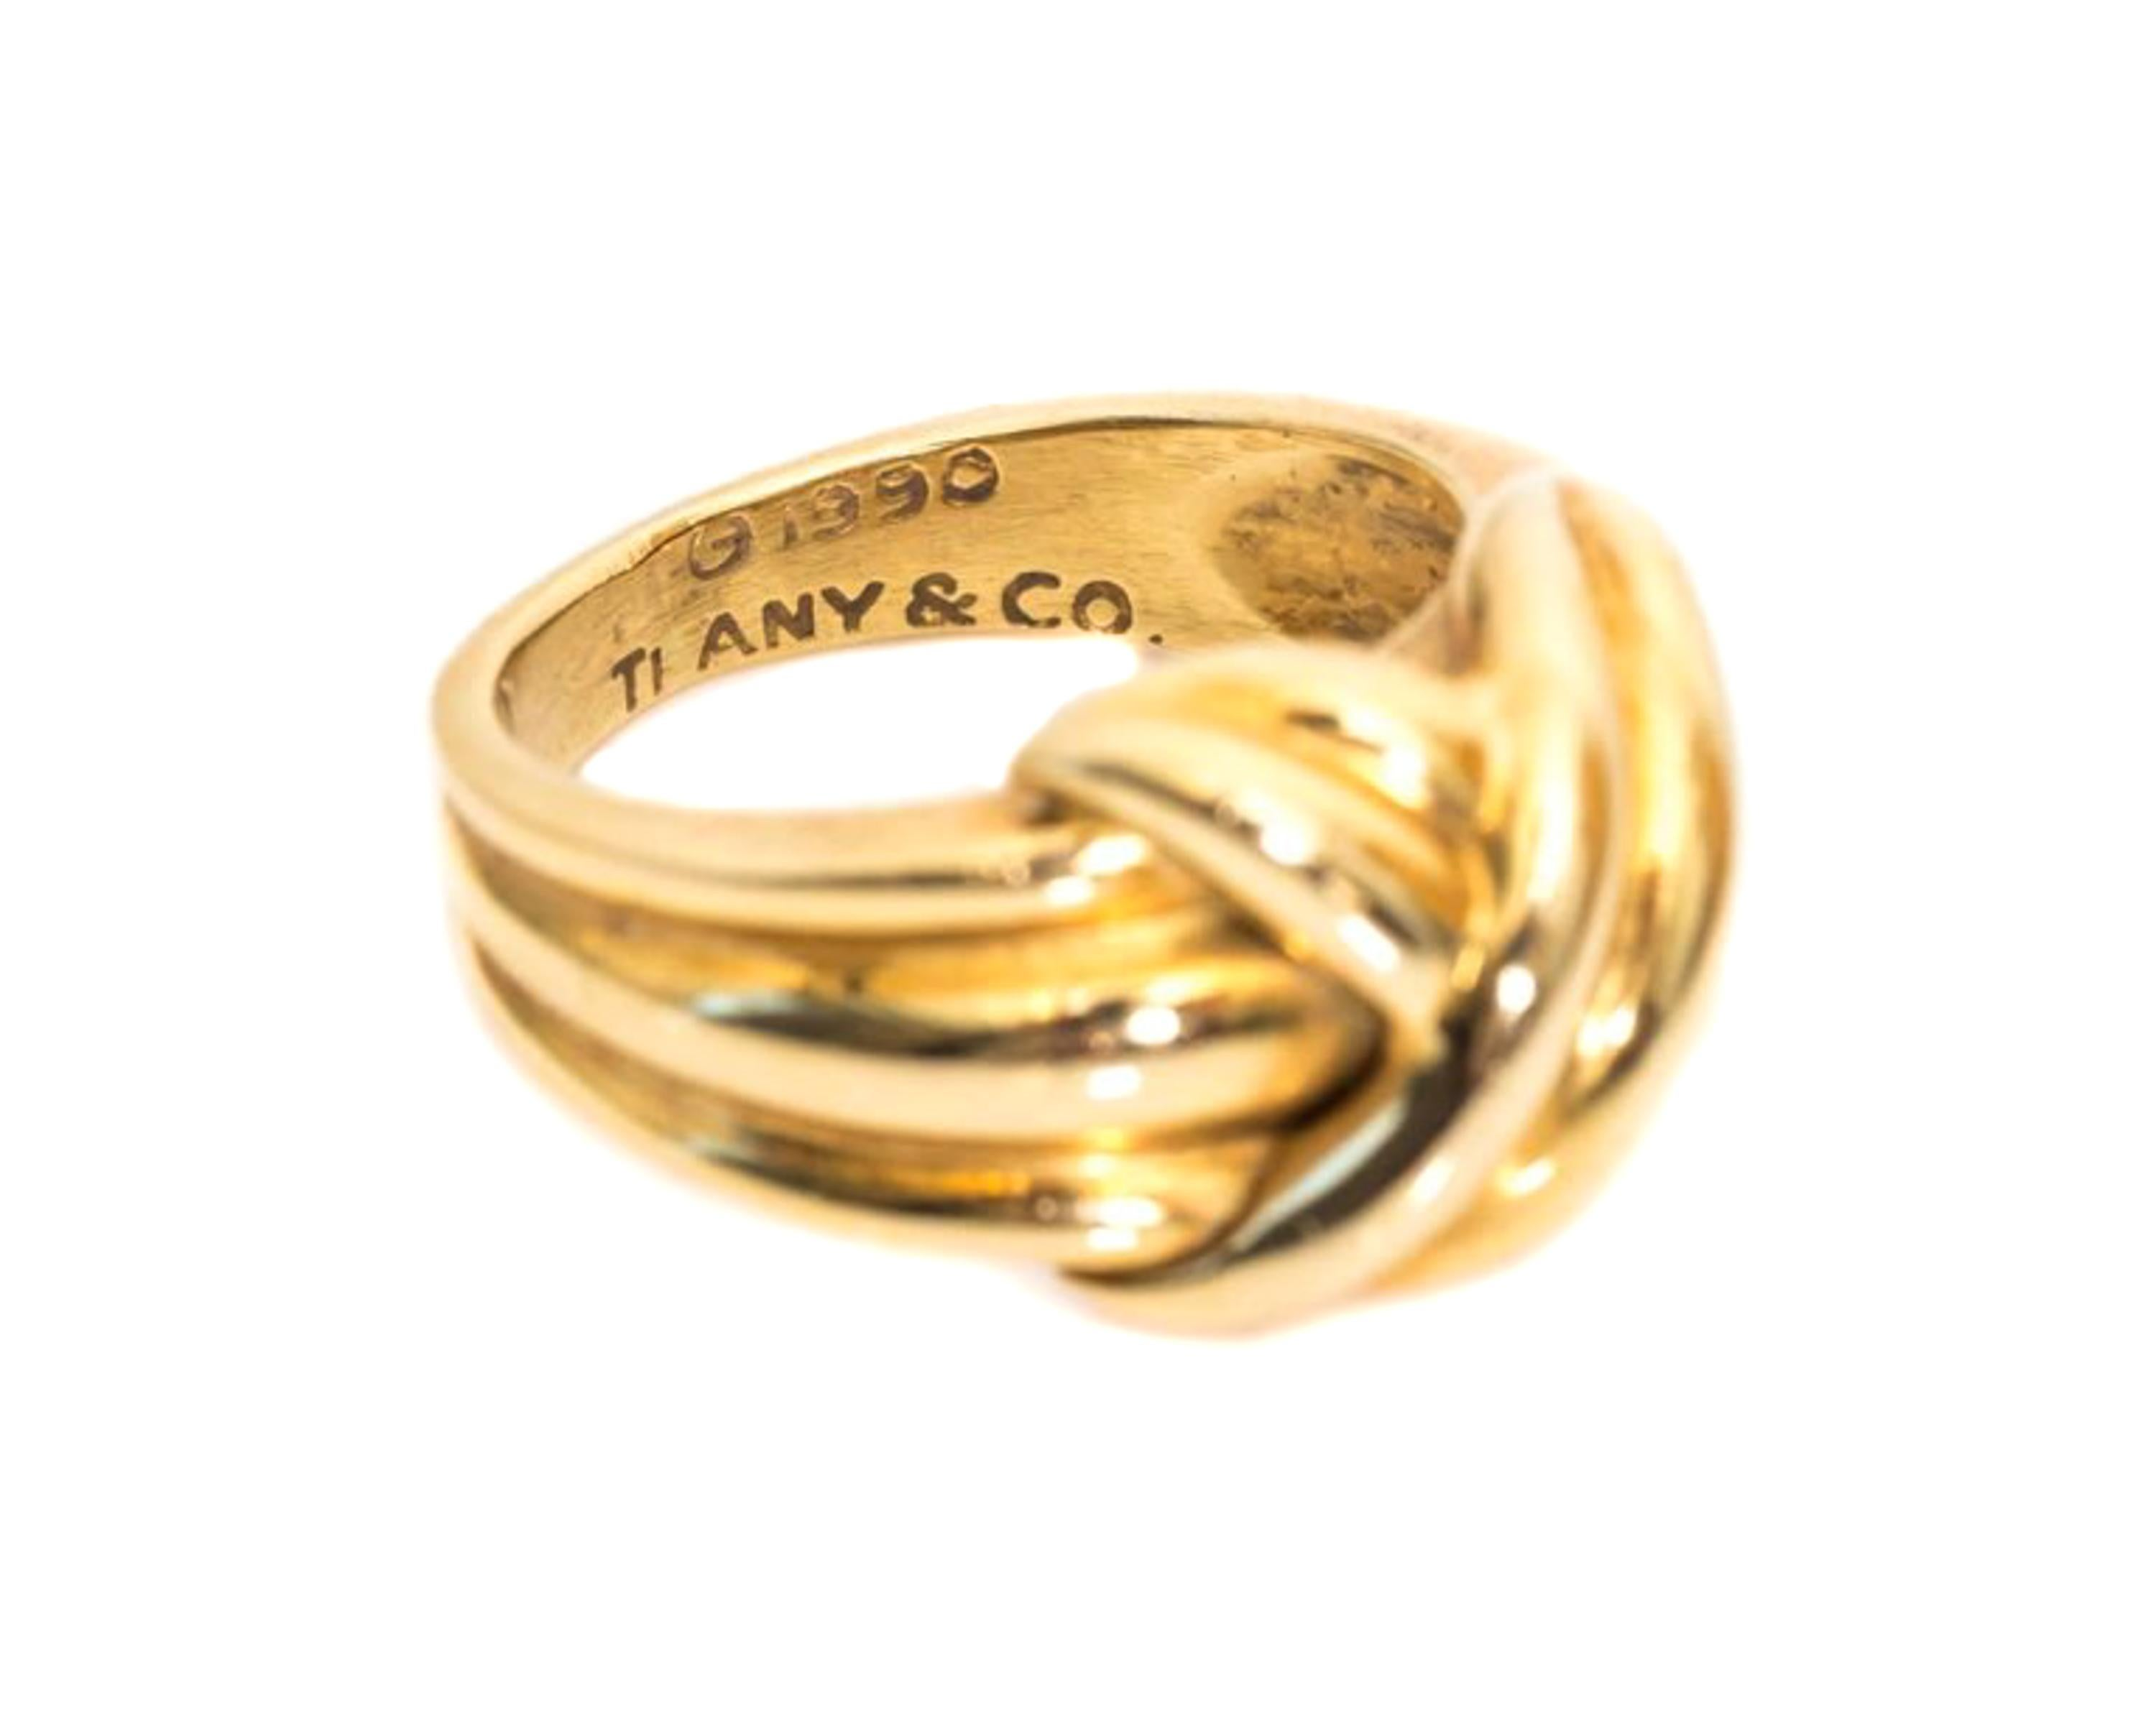 1990 Tiffany And Co 18 Karat Yellow Gold Knot Ring For Sale At 1stdibs